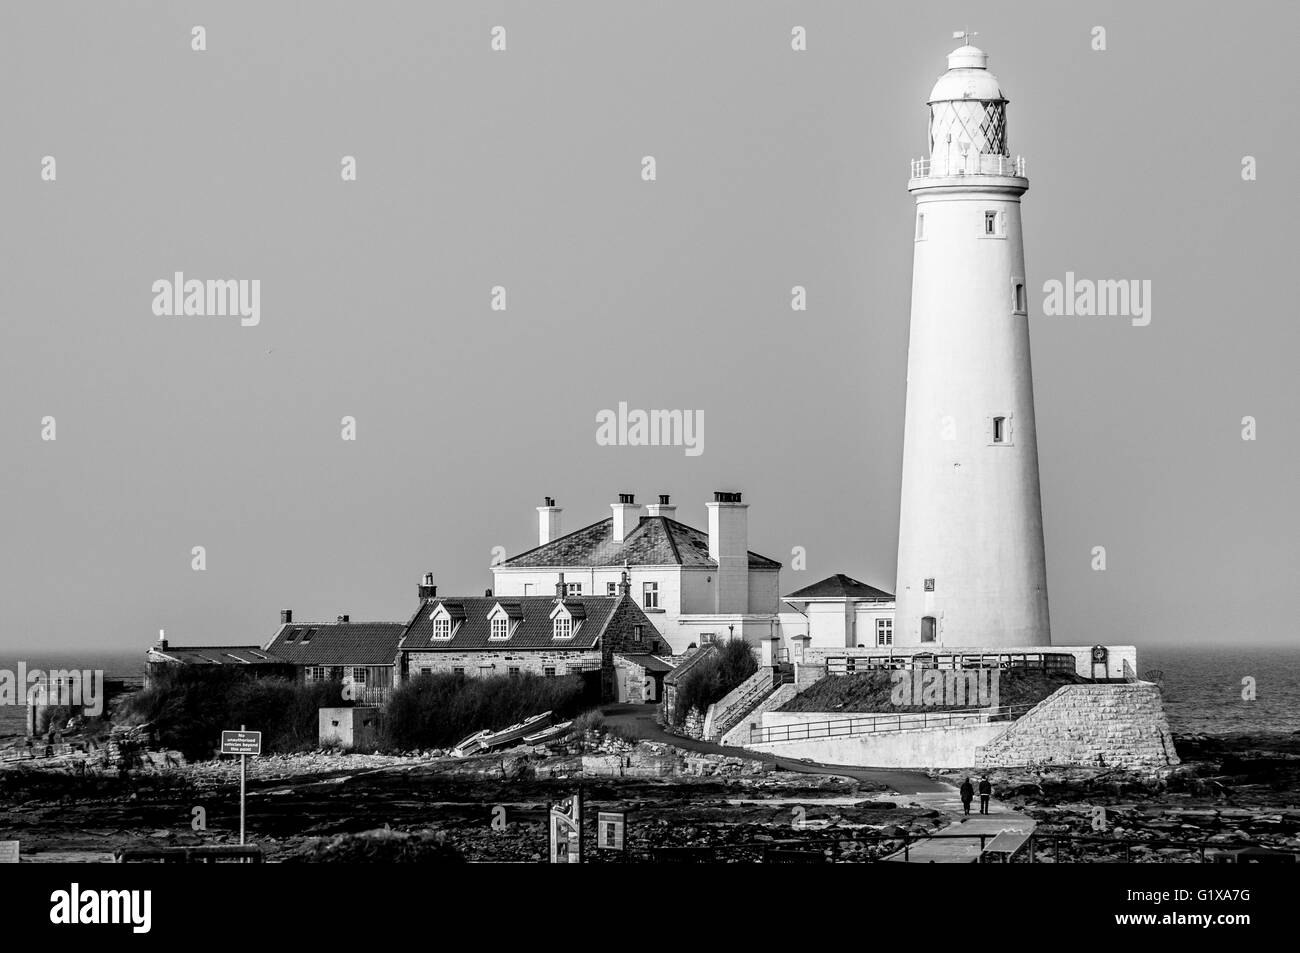 St Marys Island and Lighthouse in Mono - Stock Image